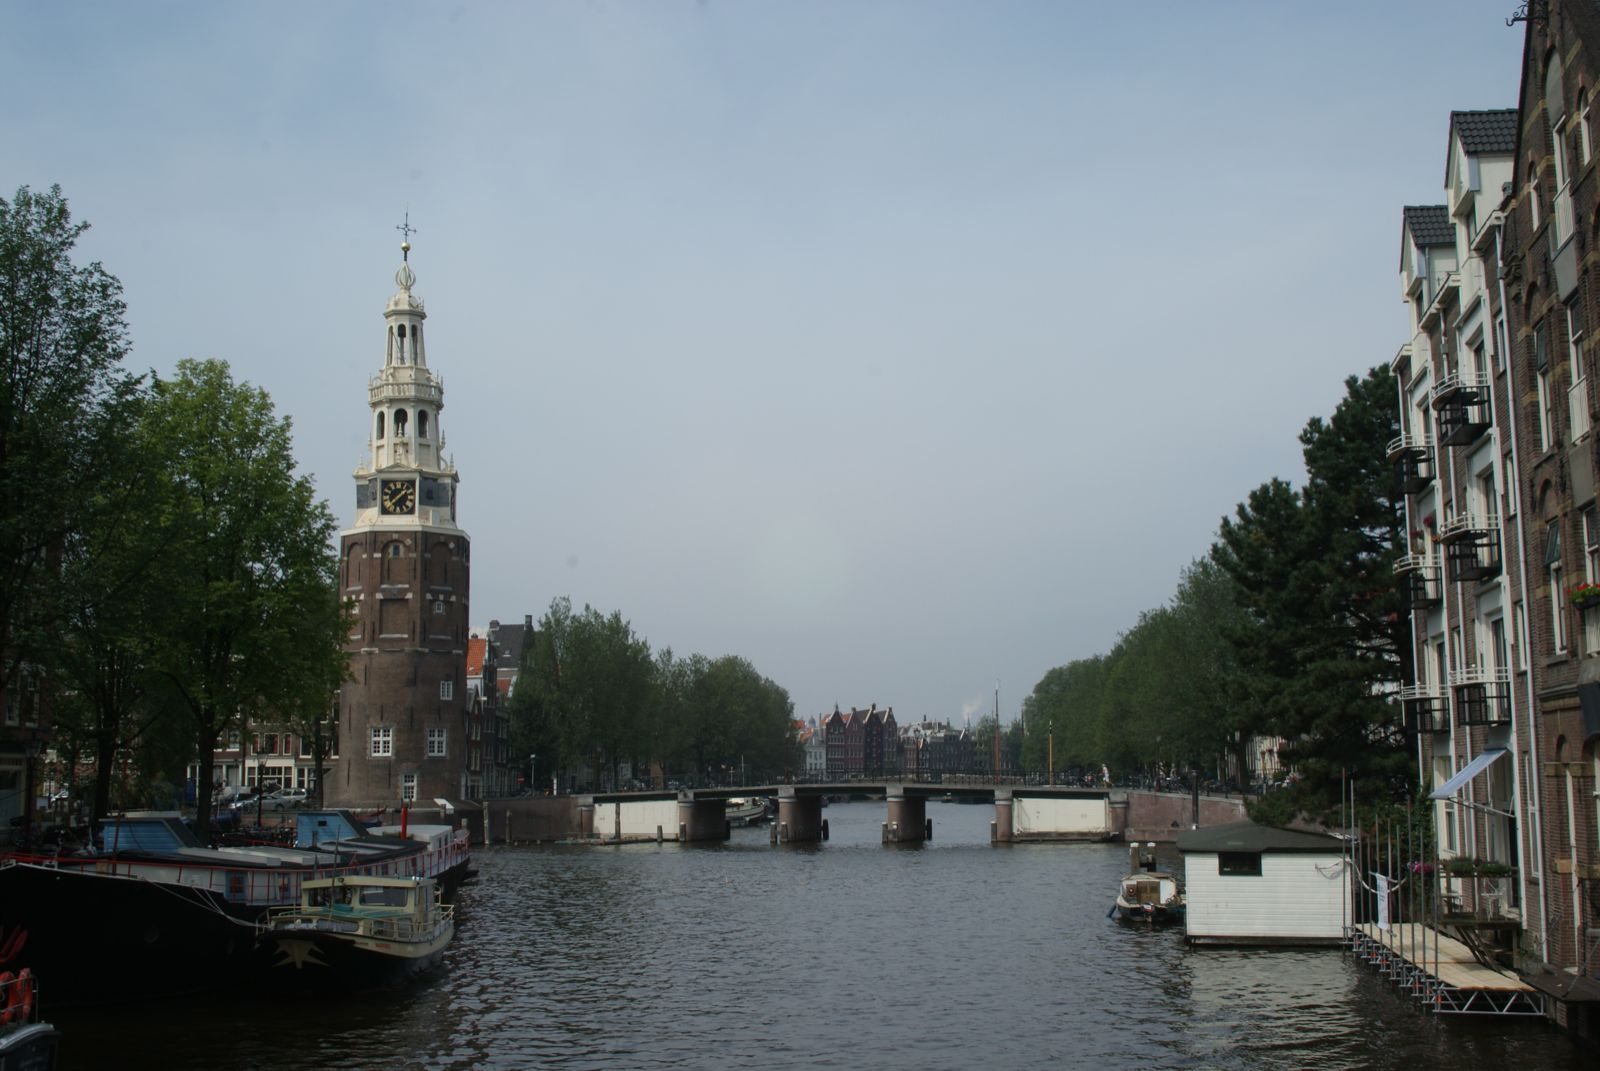 Dutch attorney-at-law based in Amsterdam